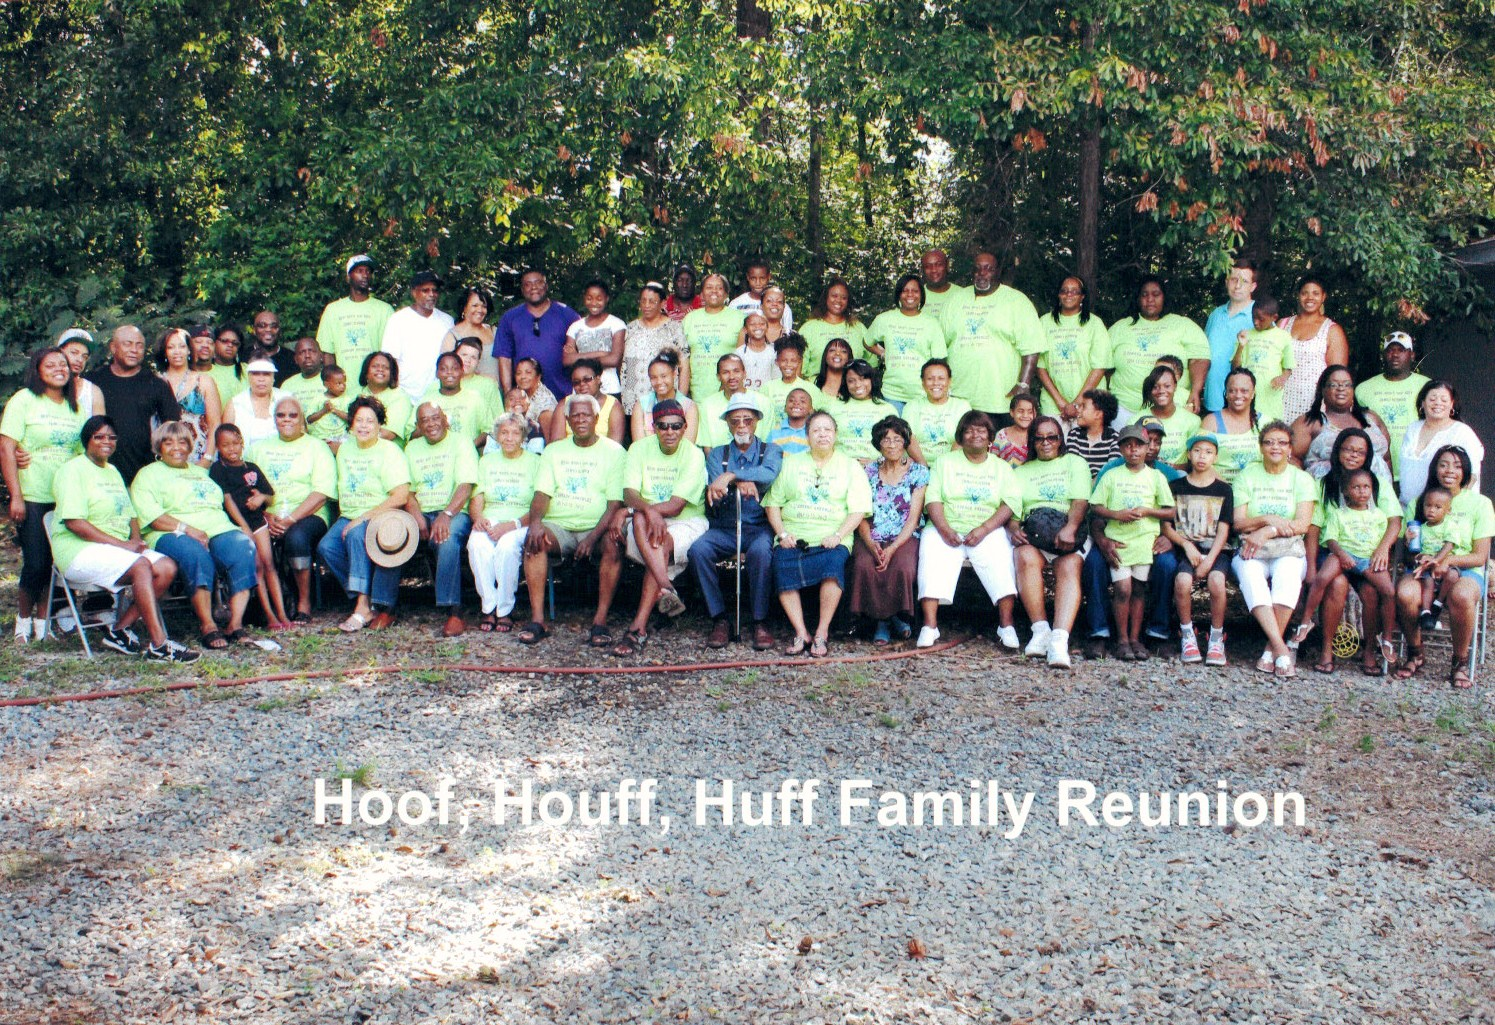 Custom T Shirts For Hoof Houff And Huff Family Reunion 2012